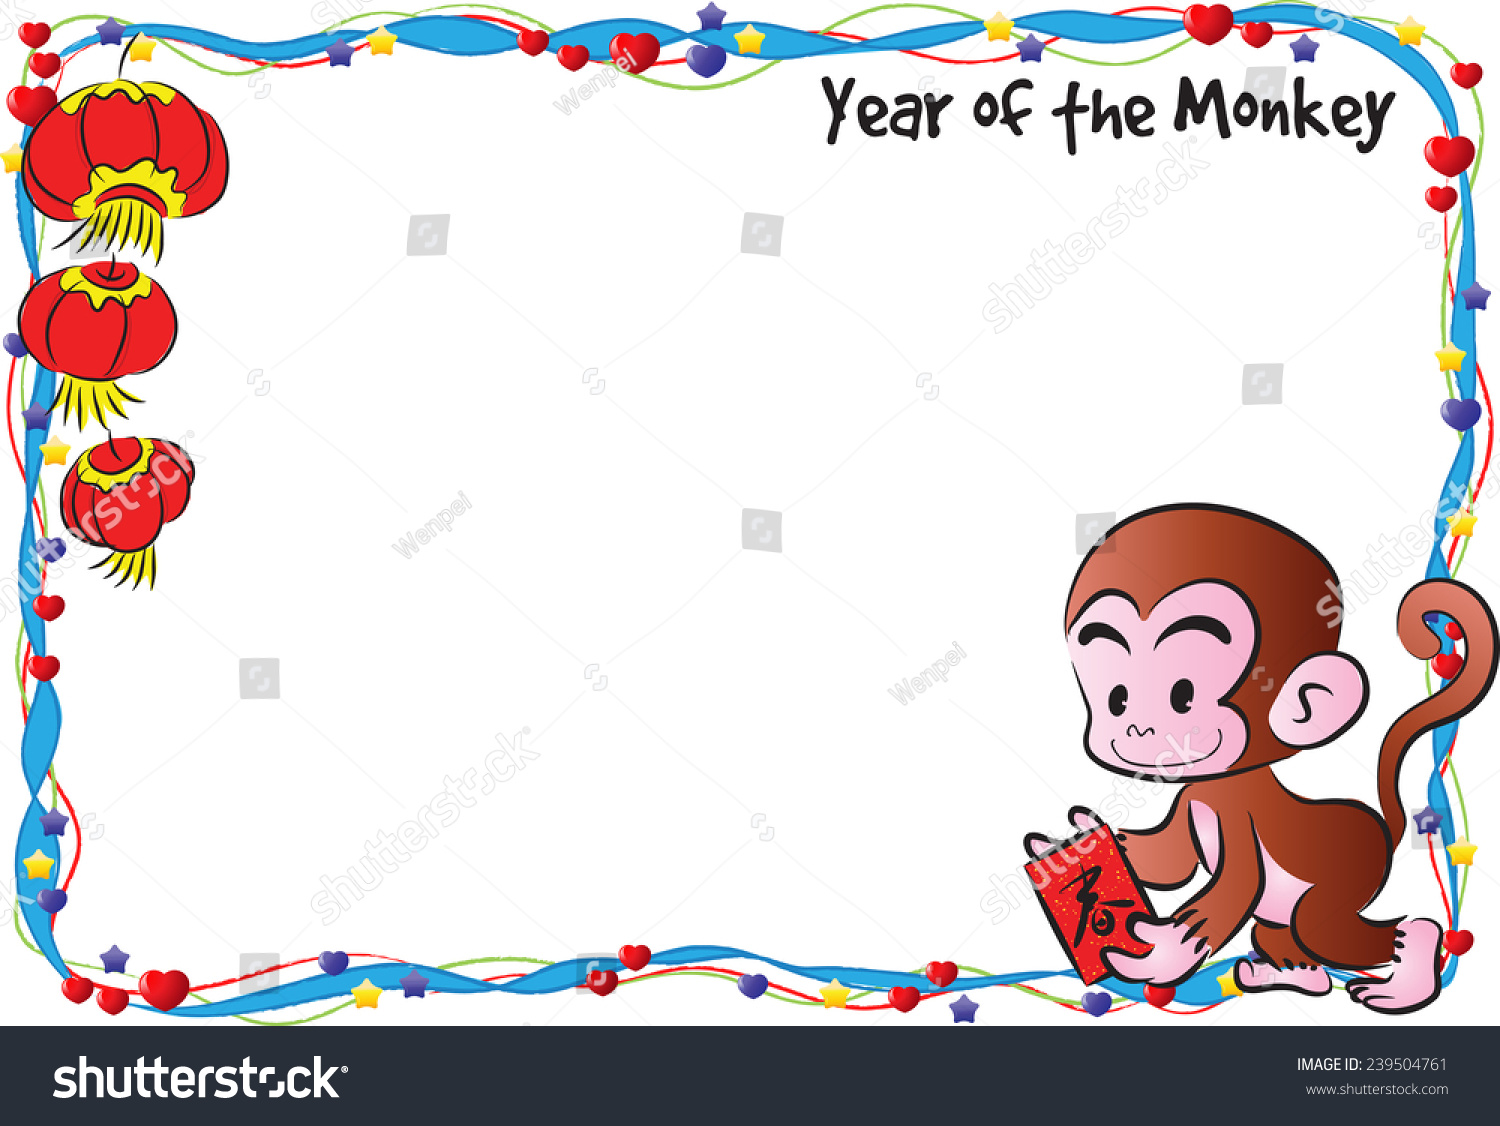 year of the monkey border frame - Monkey Picture Frame